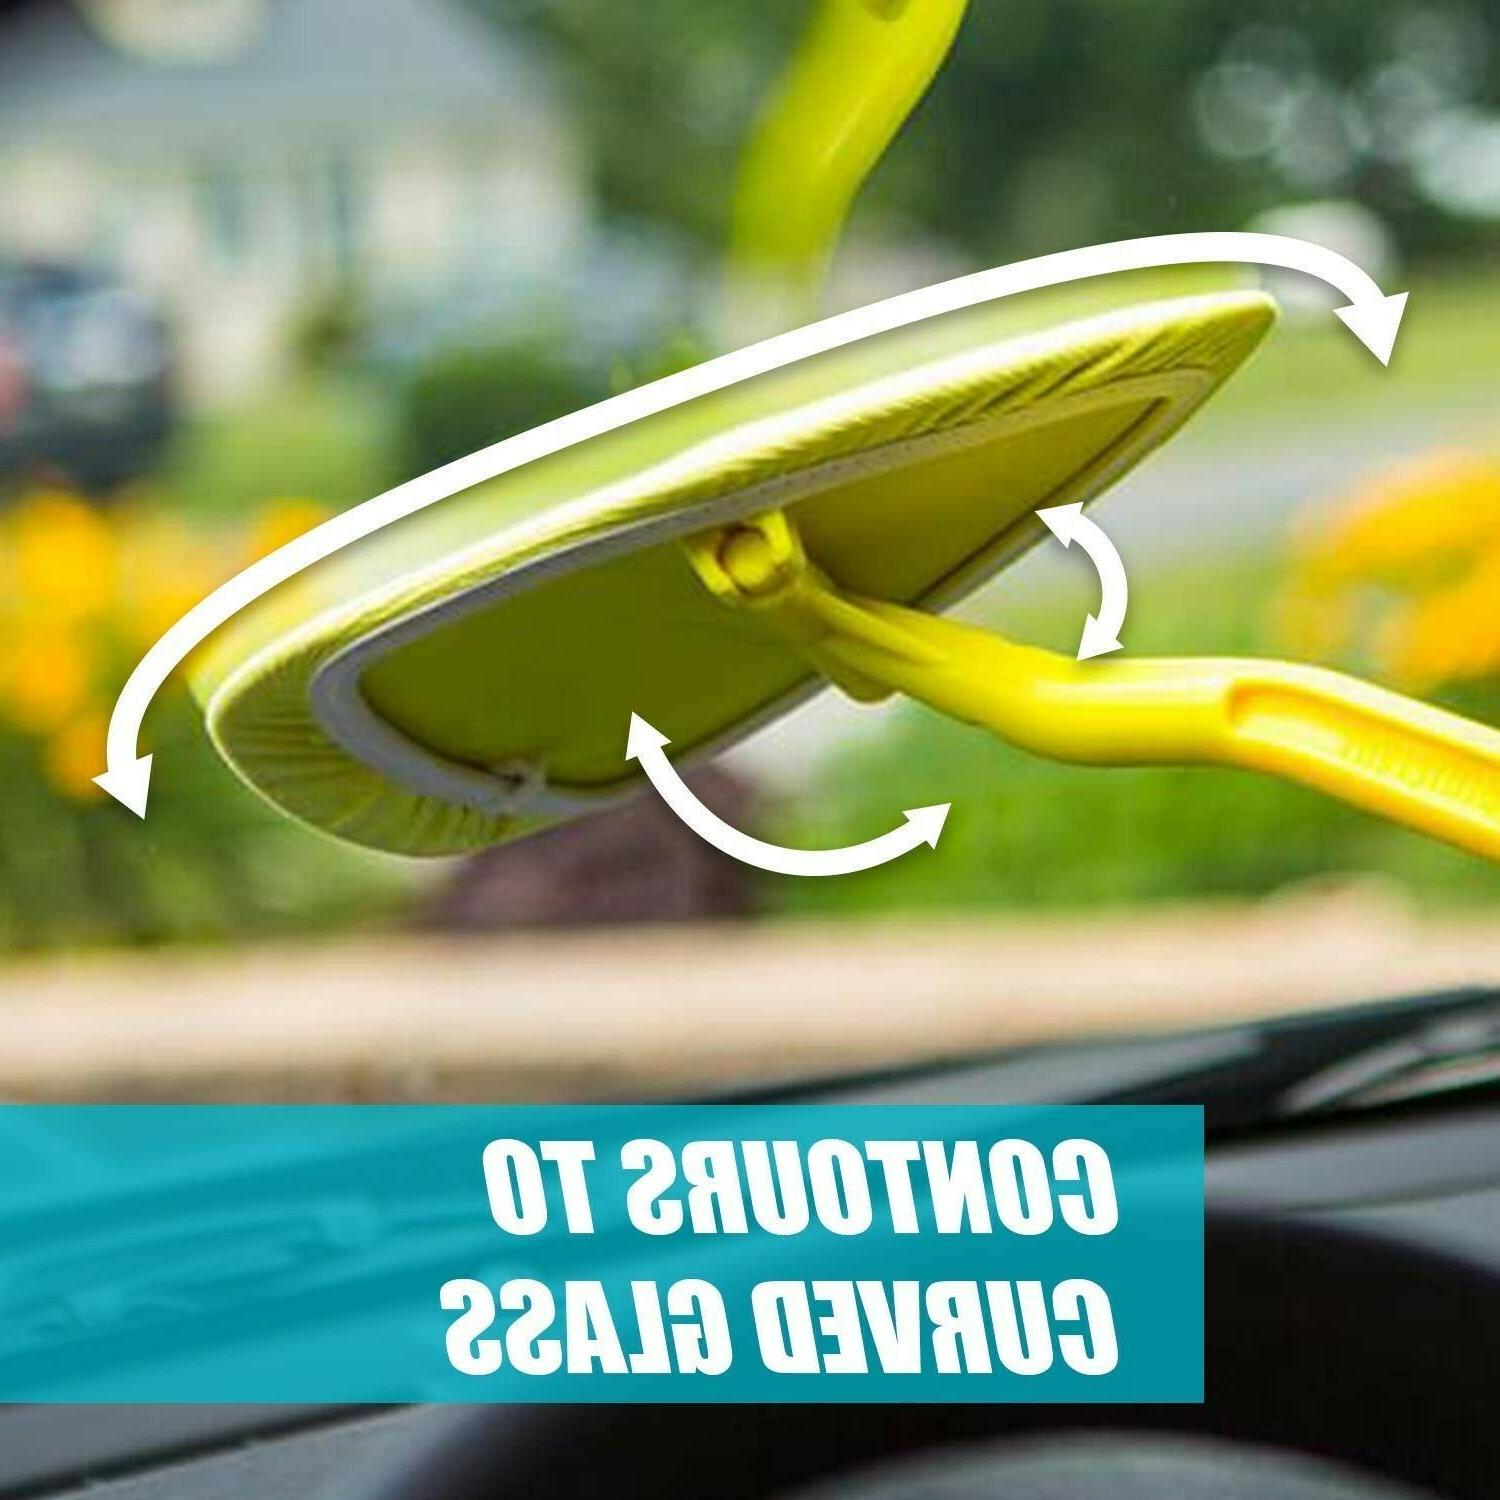 Window Tool for Windshields, Invisible Glass Cleaner